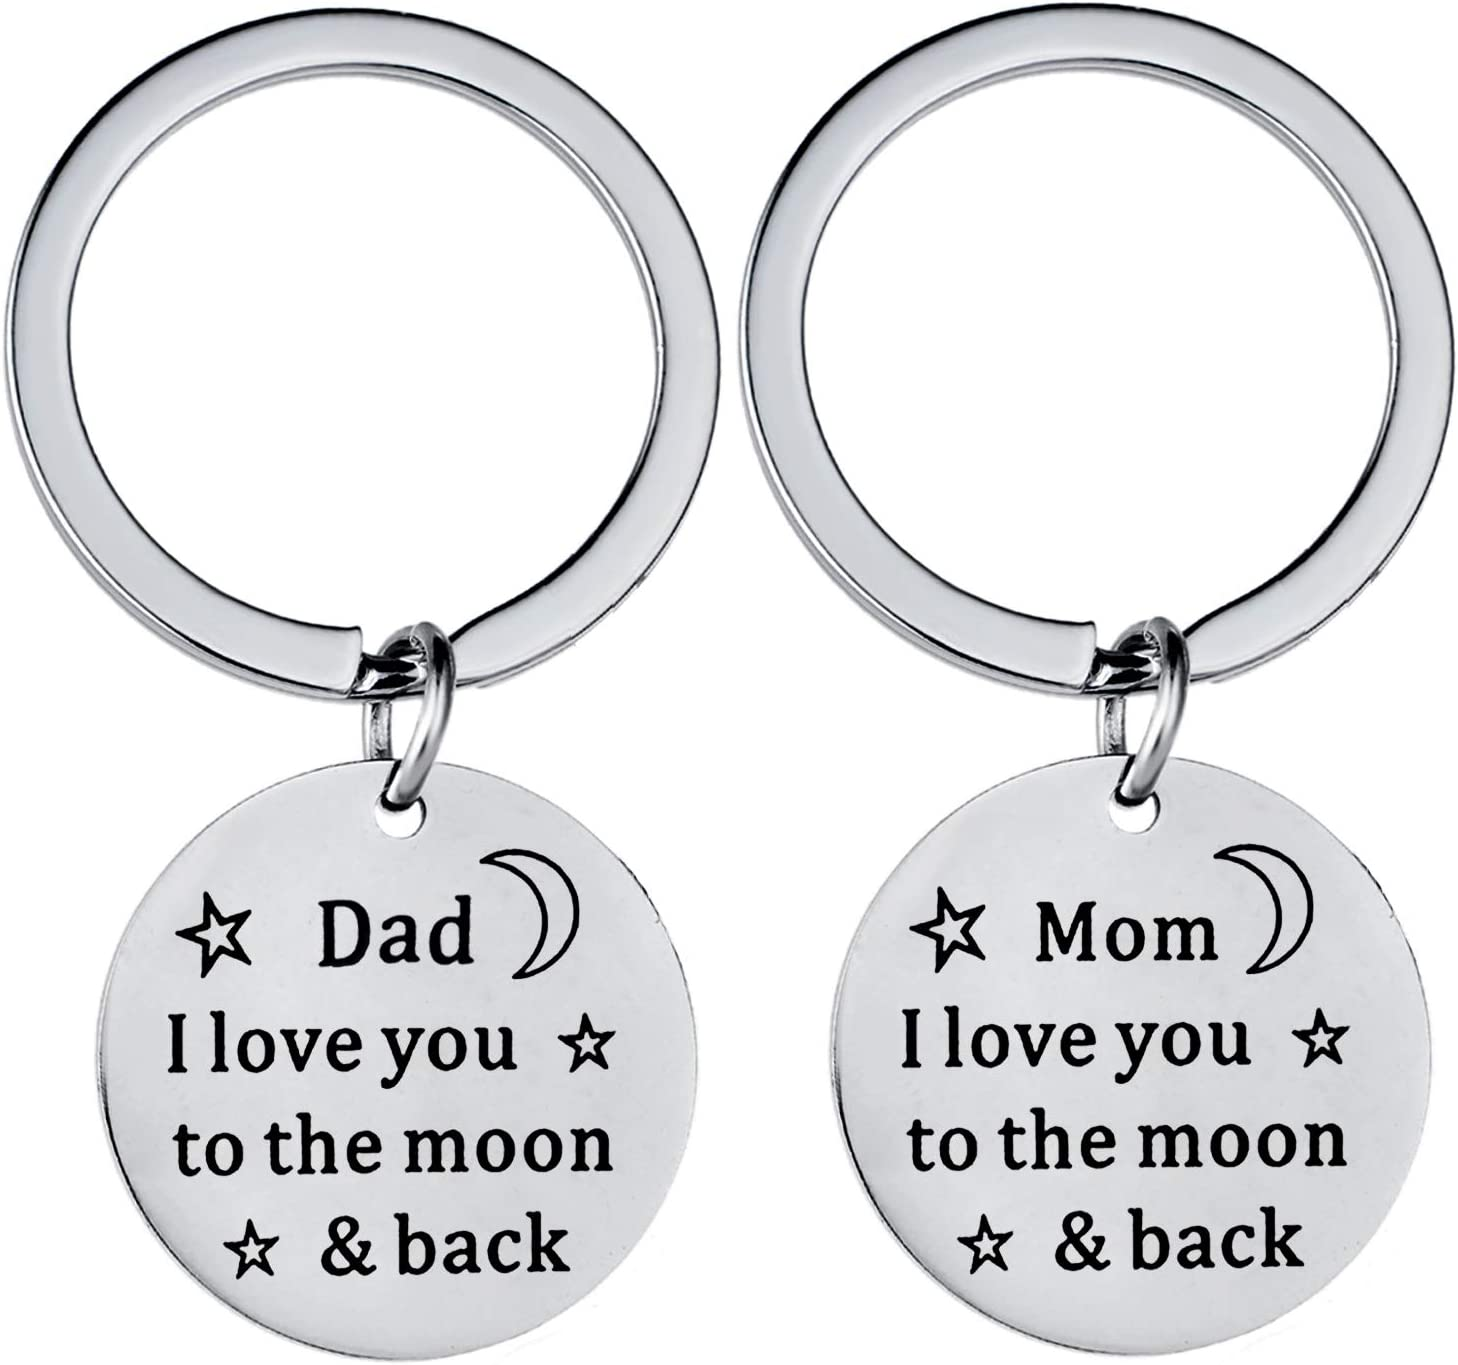 Mother/'s Day Gift I Love Mom Love You To the Moon Keychain Key Ring Daddy/'s Girl